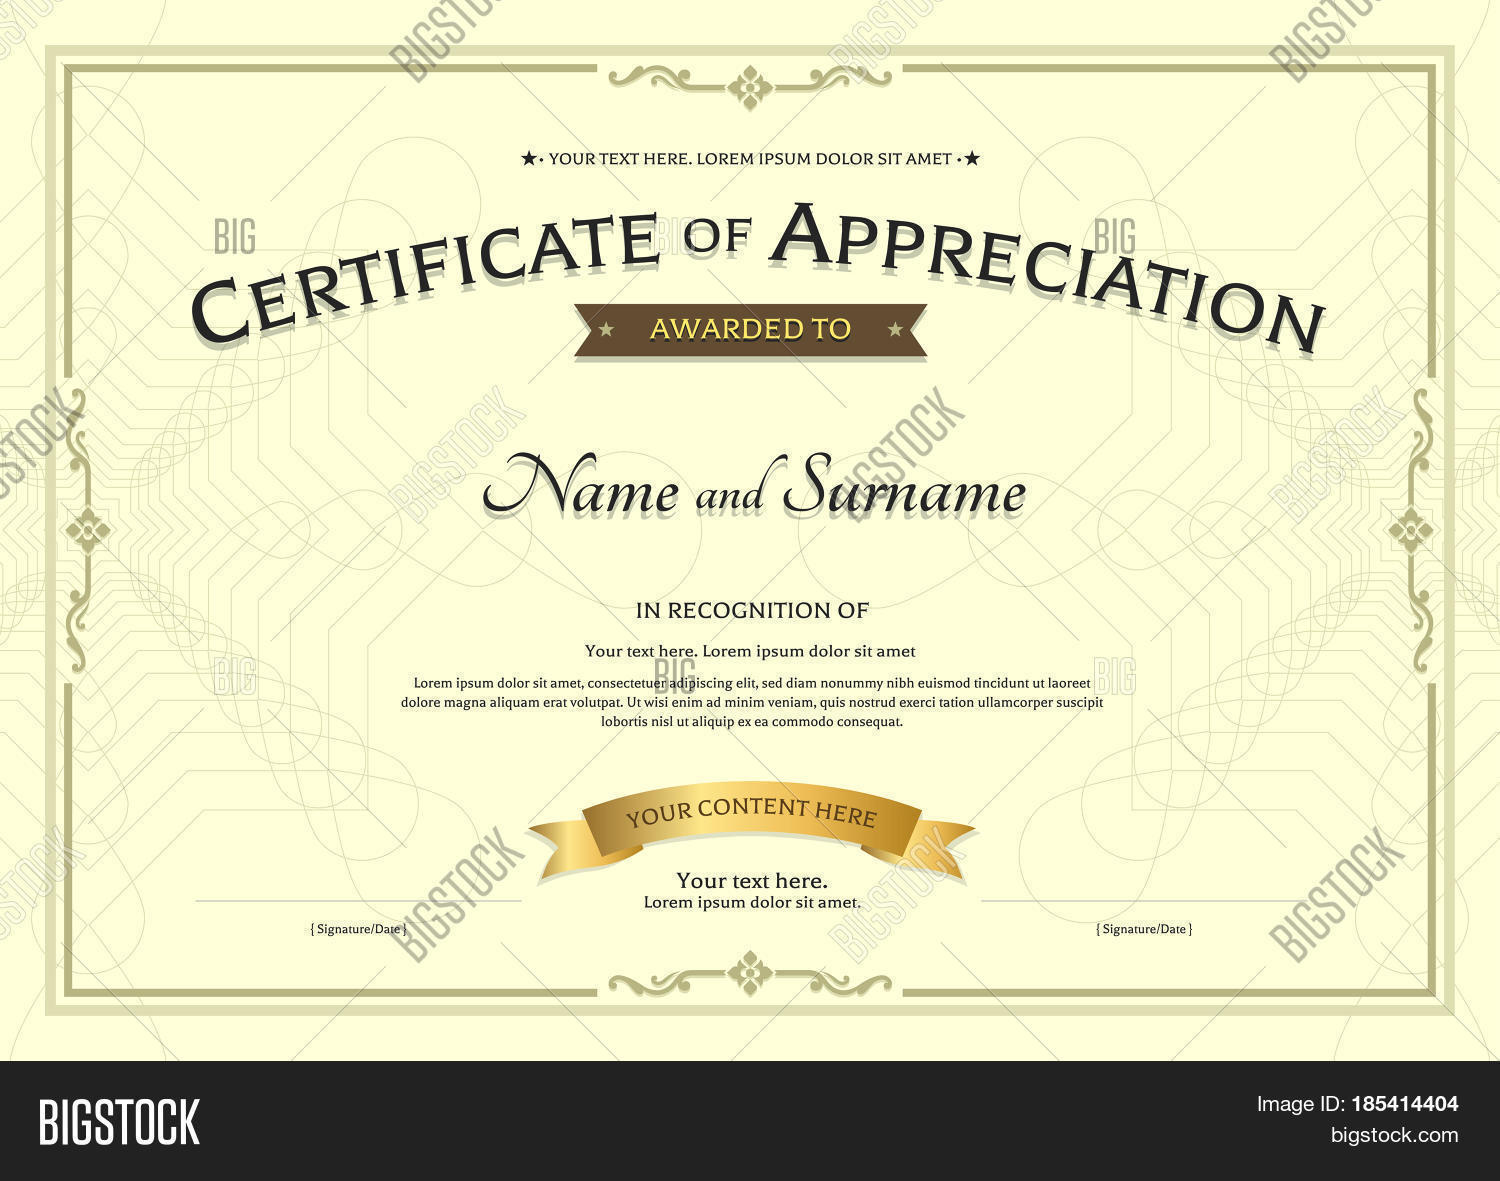 Certificate appreciation template vector photo bigstock certificate of appreciation template with award ribbon on abstract guilloche background with vintage border style alramifo Image collections